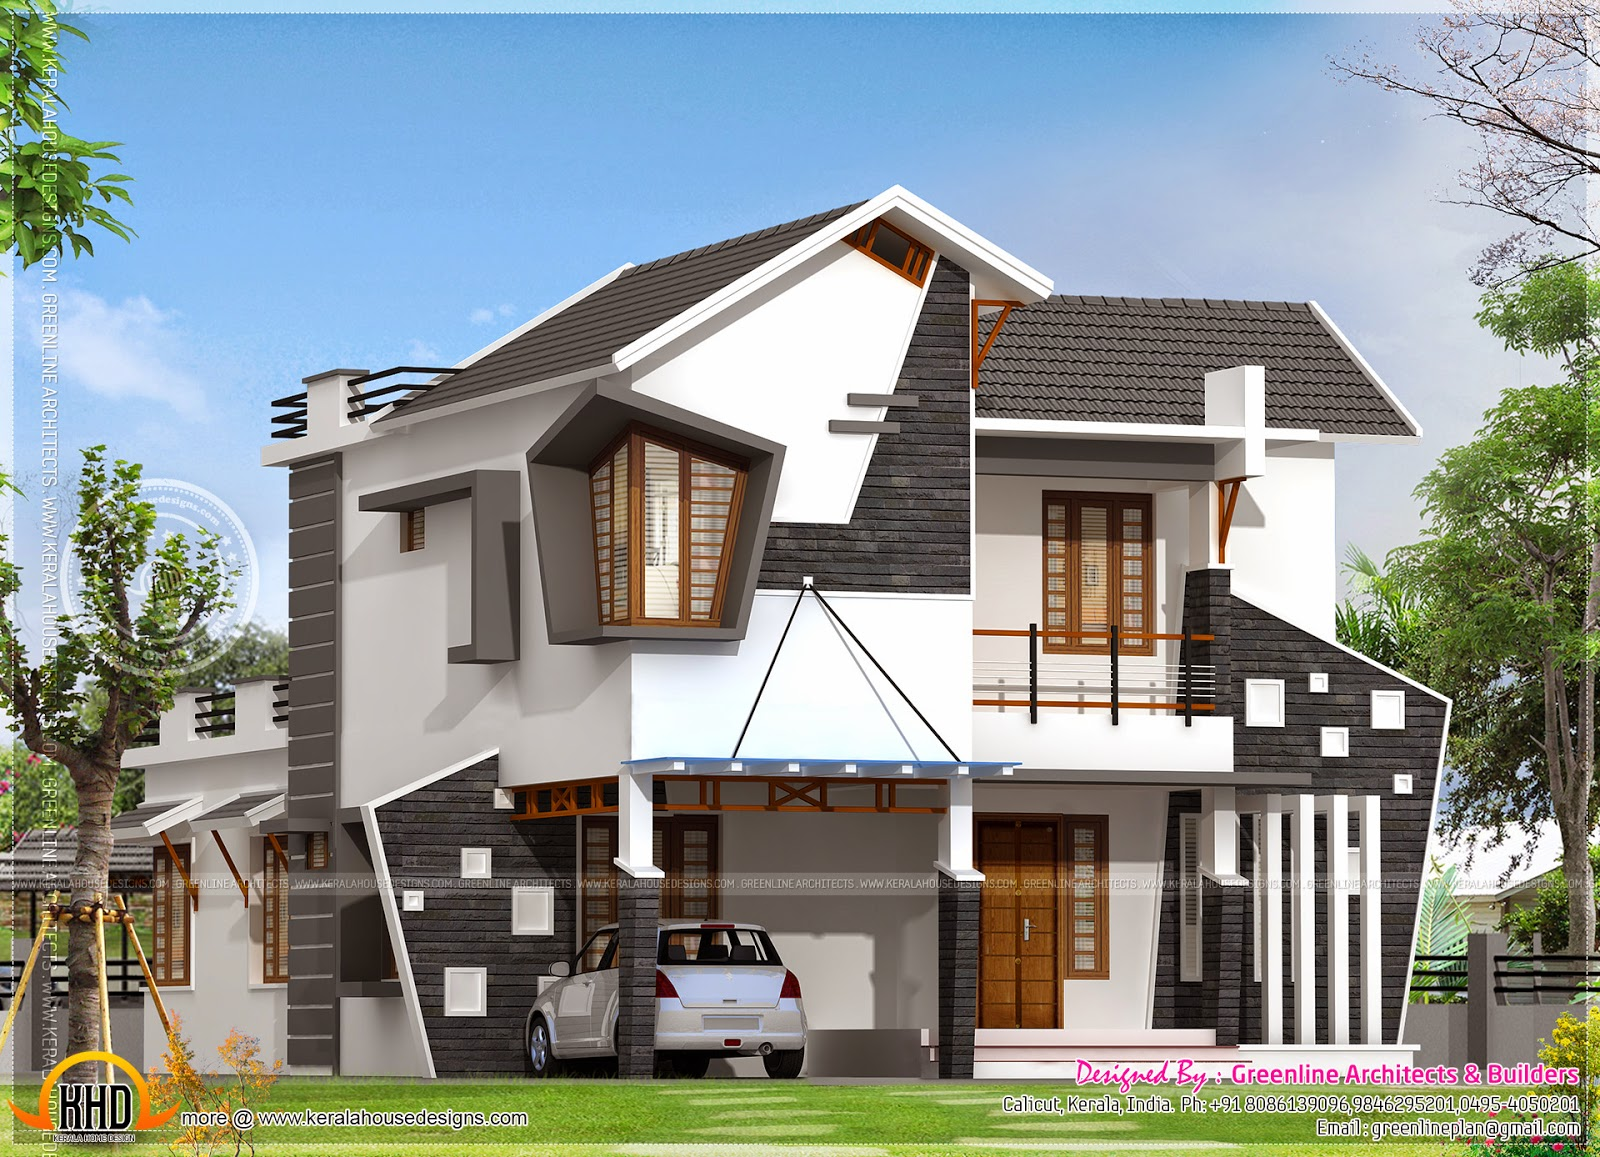 Cool House Designs Of Unique House Exterior In 2154 Square Feet Kerala Home